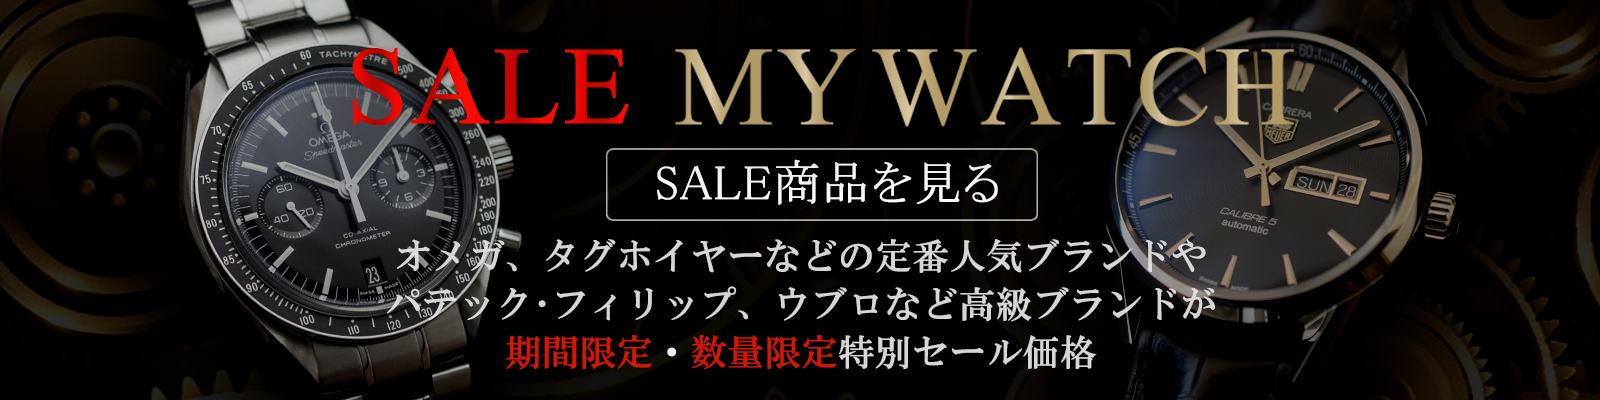 MYWATCH SALE